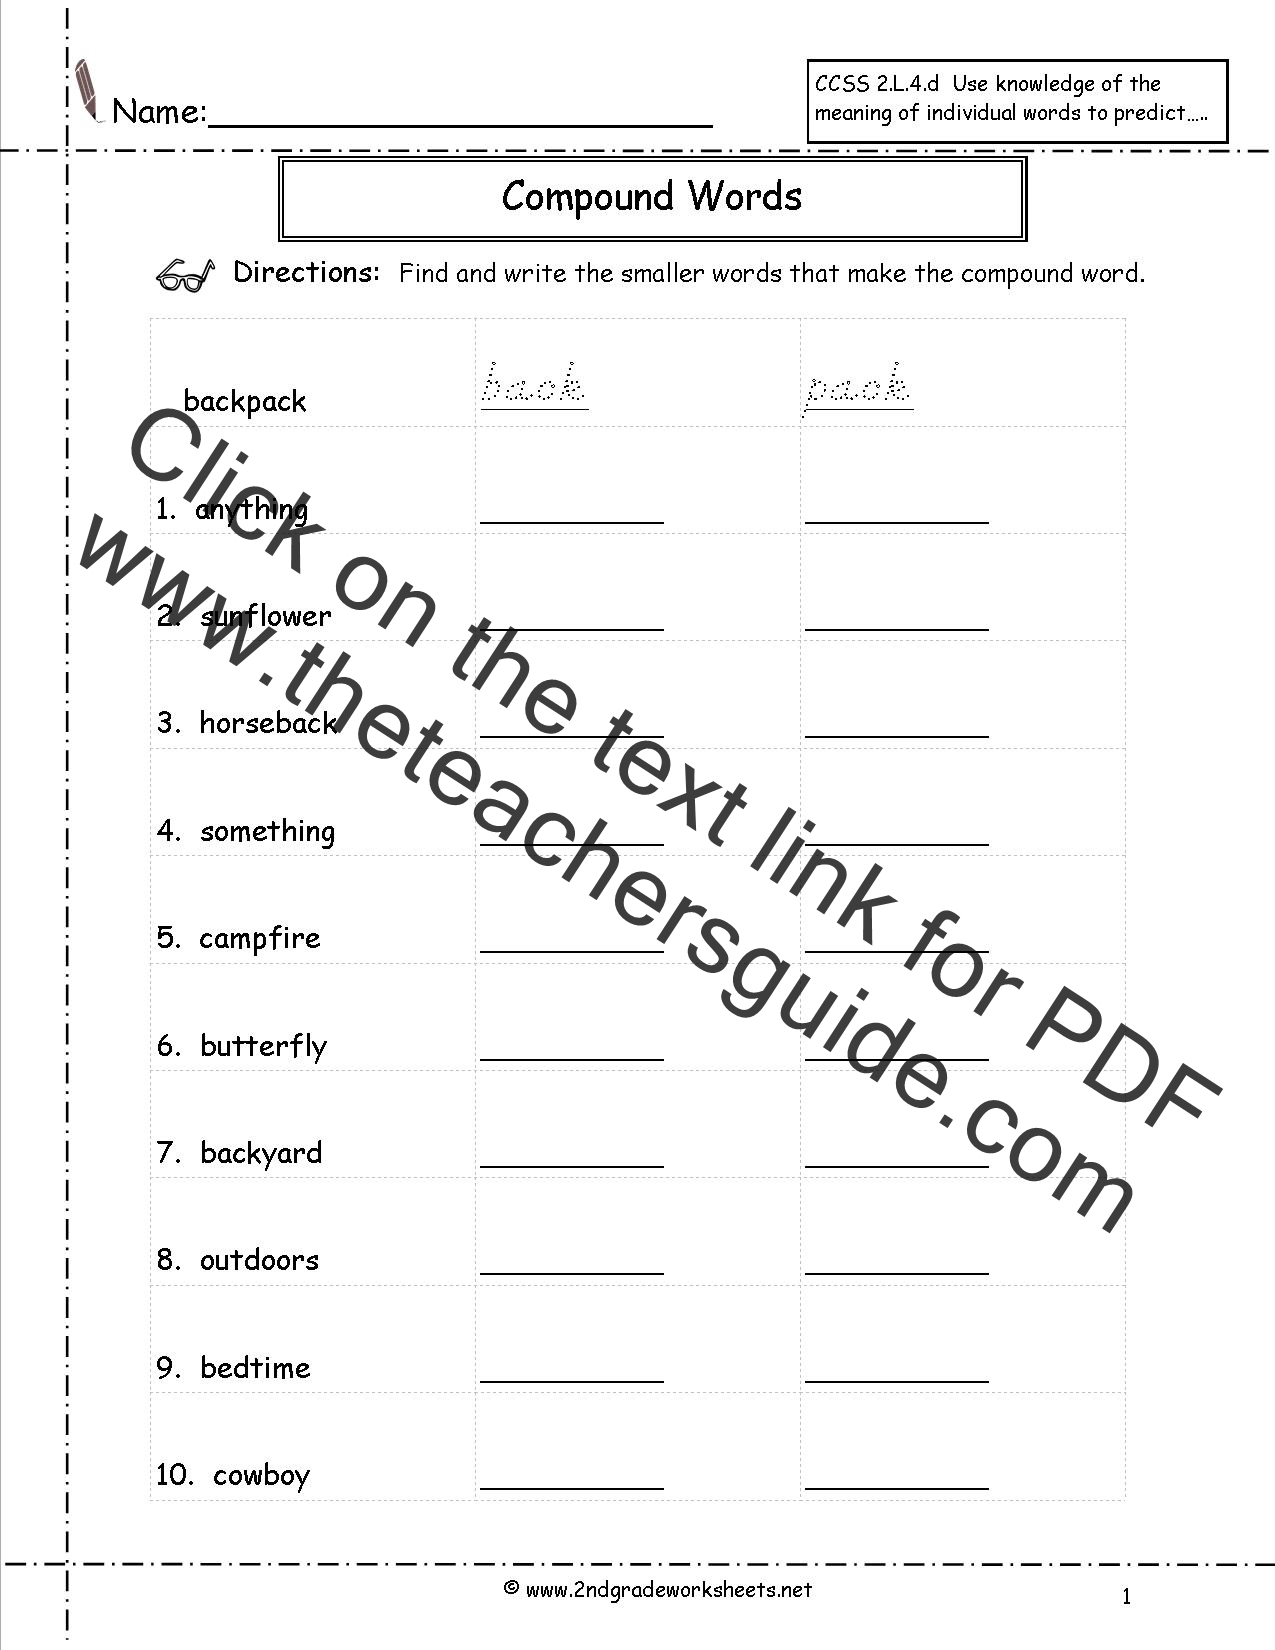 Worksheets Free Language Worksheets free languagegrammar worksheets and printouts compound words worksheets